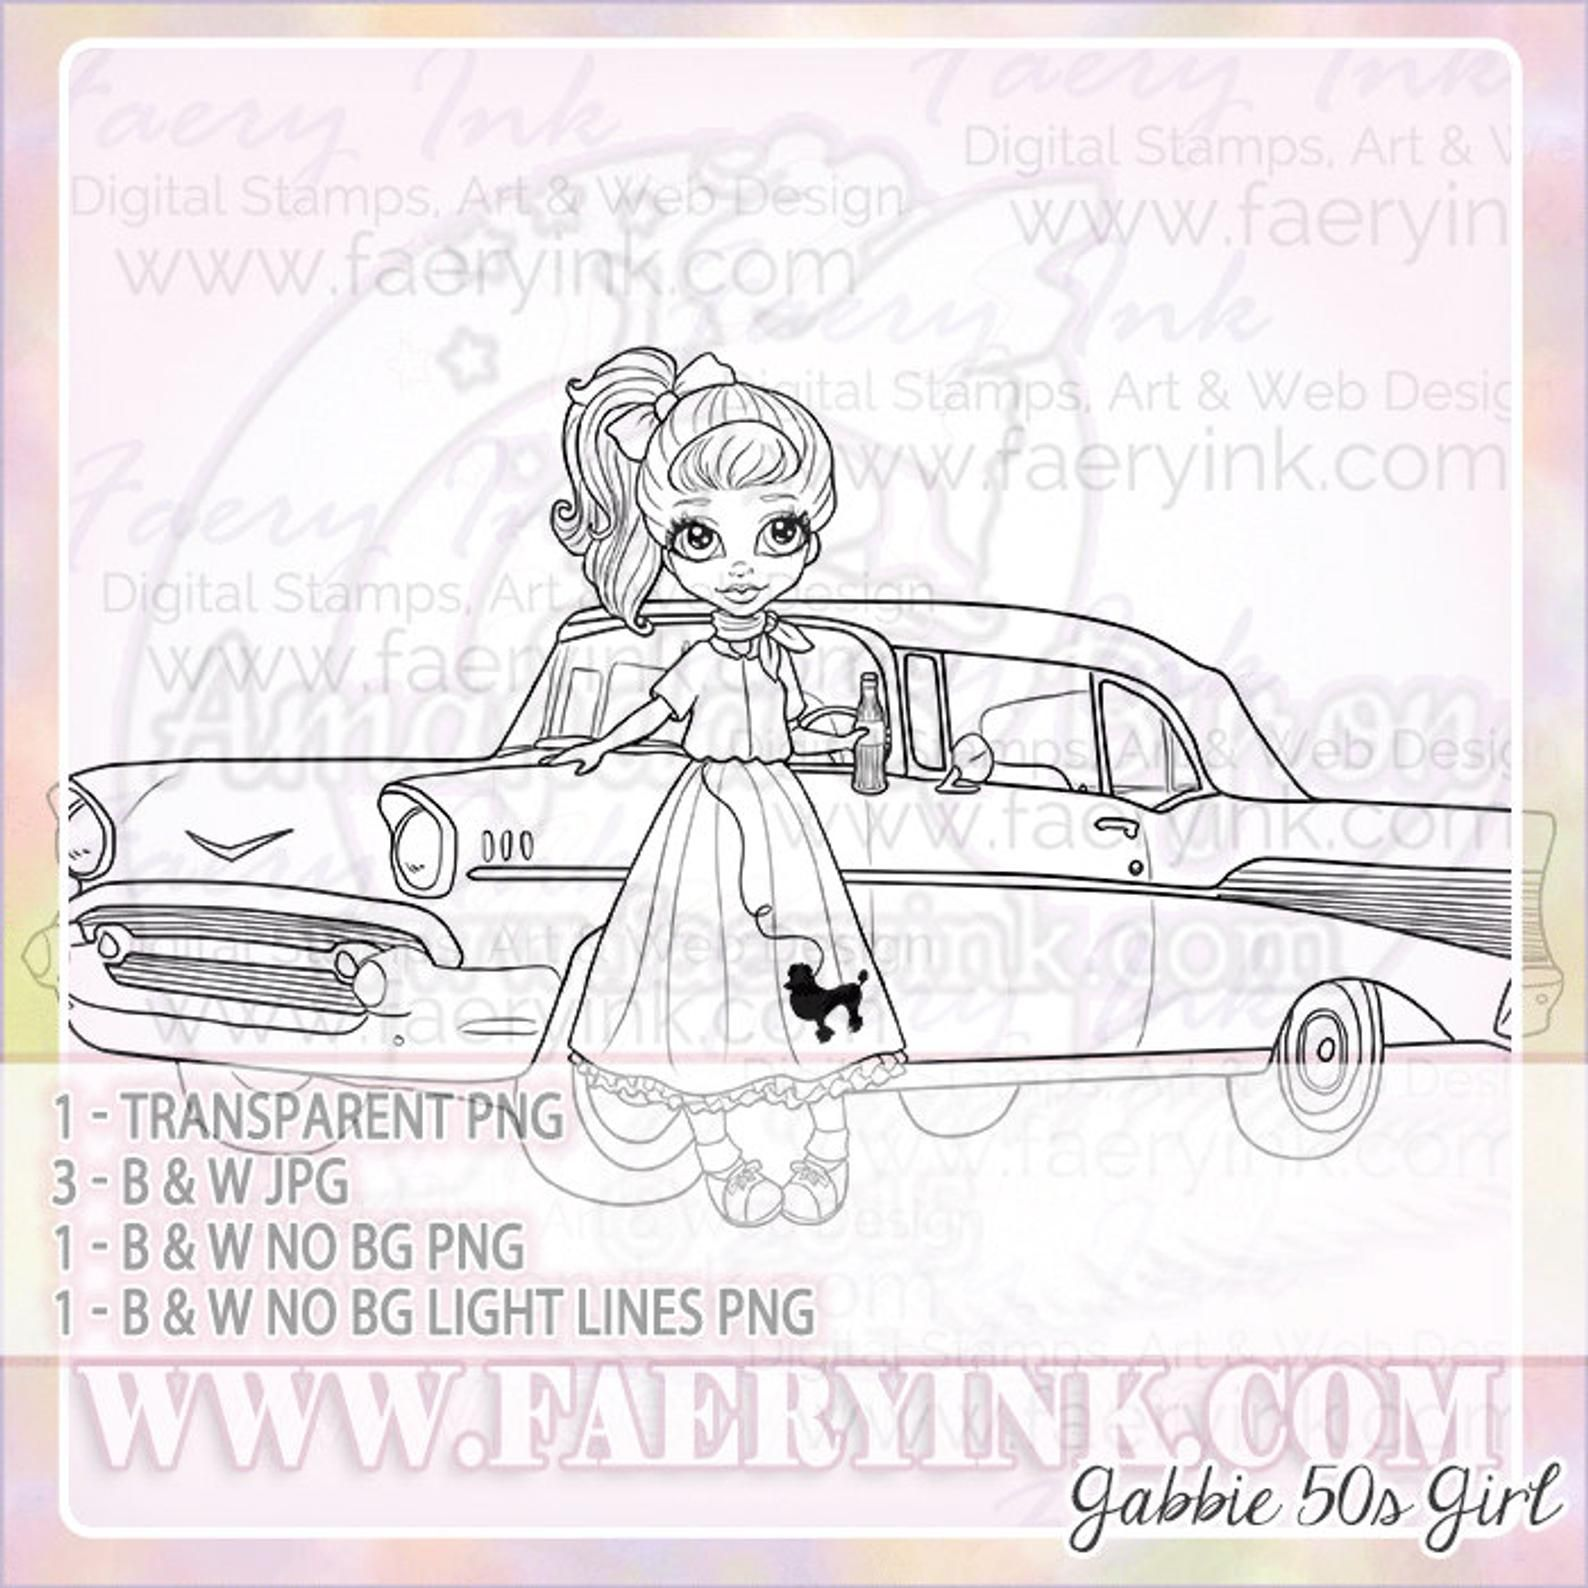 Items similar to 50s Poodle Skirt Girl Classic Car Diner UNCOLORED Digital Stamp Image Adult Coloring Page jpeg png jpg Craft Cardmaking Papercrafting DIY on Etsy